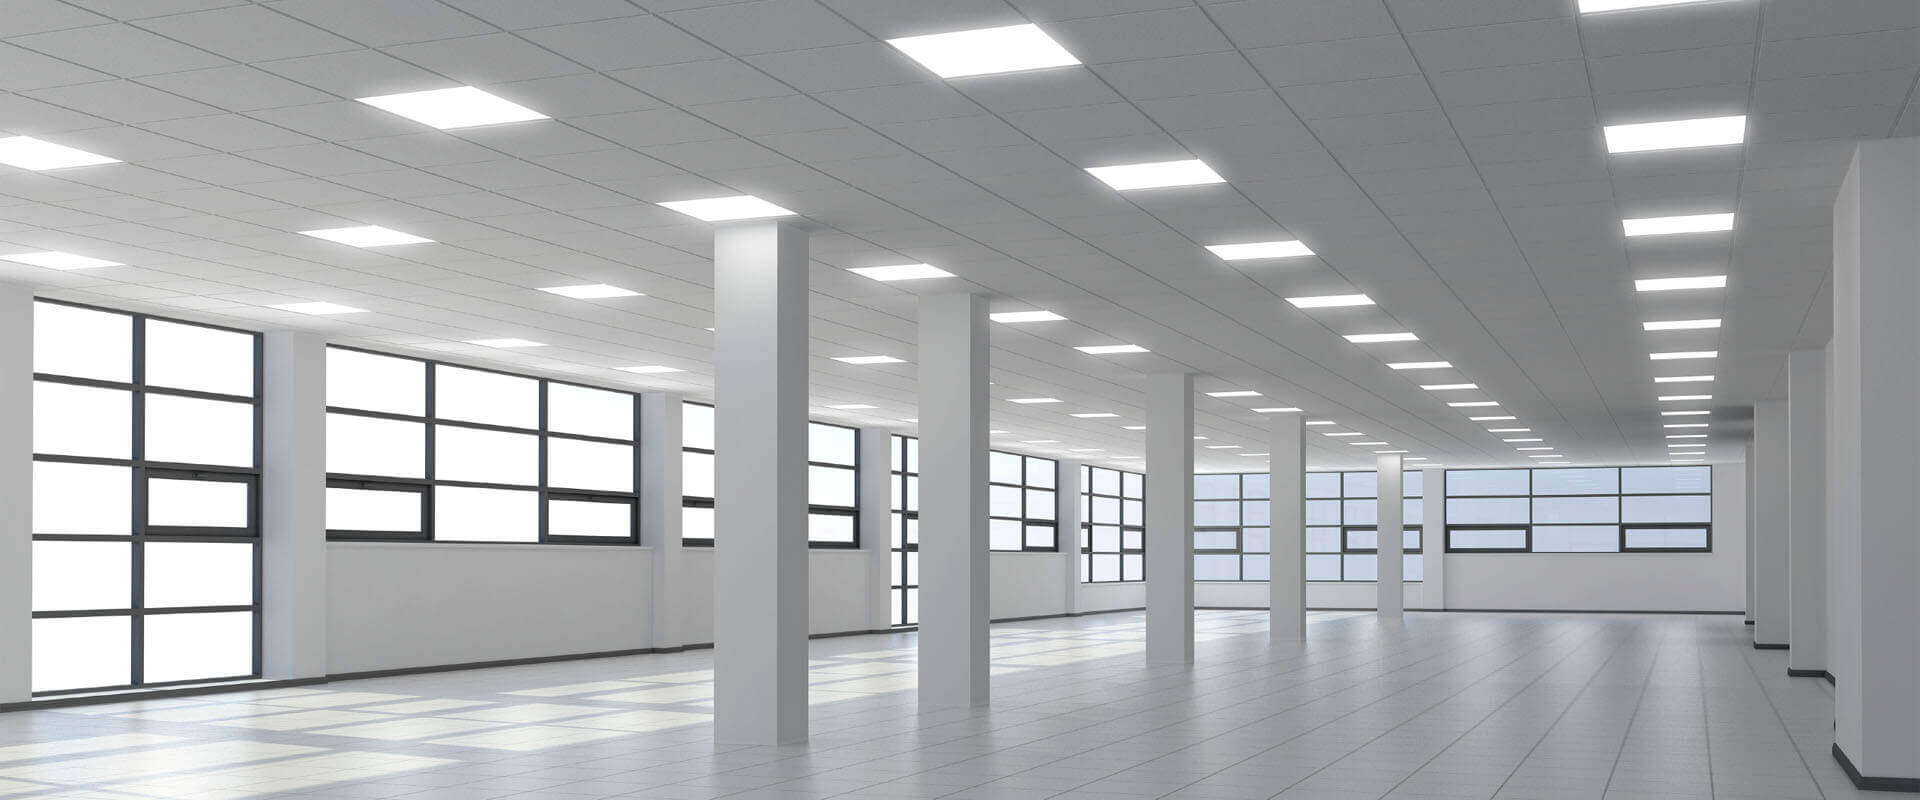 LED lighting services in Braintree